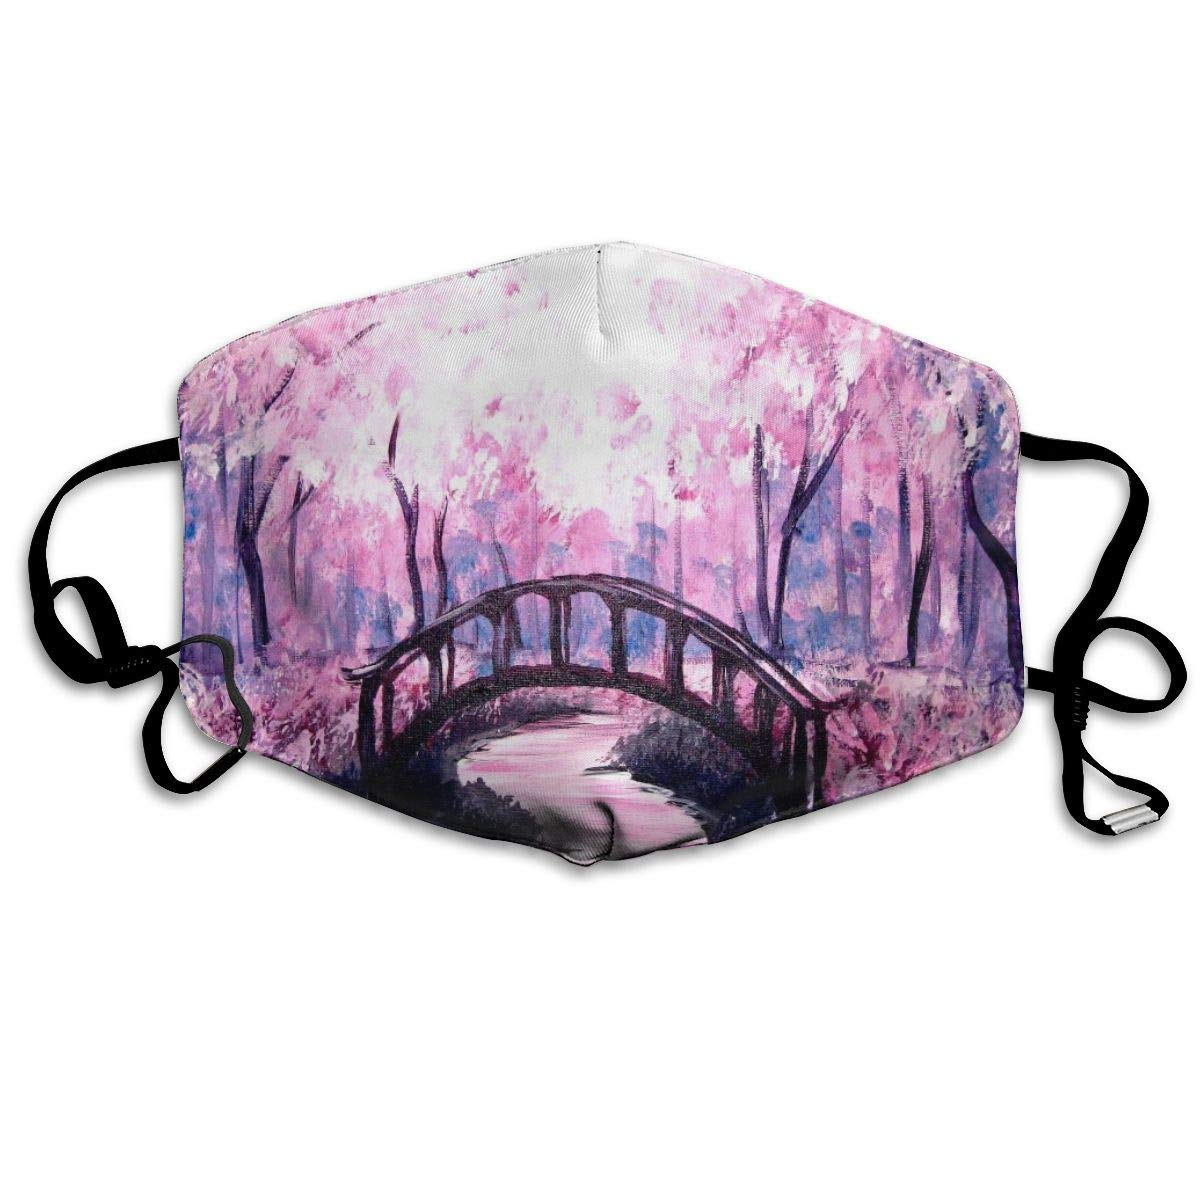 Reusable Polyester Anti-dust Fashion Printed Face Masks For Adults And Children